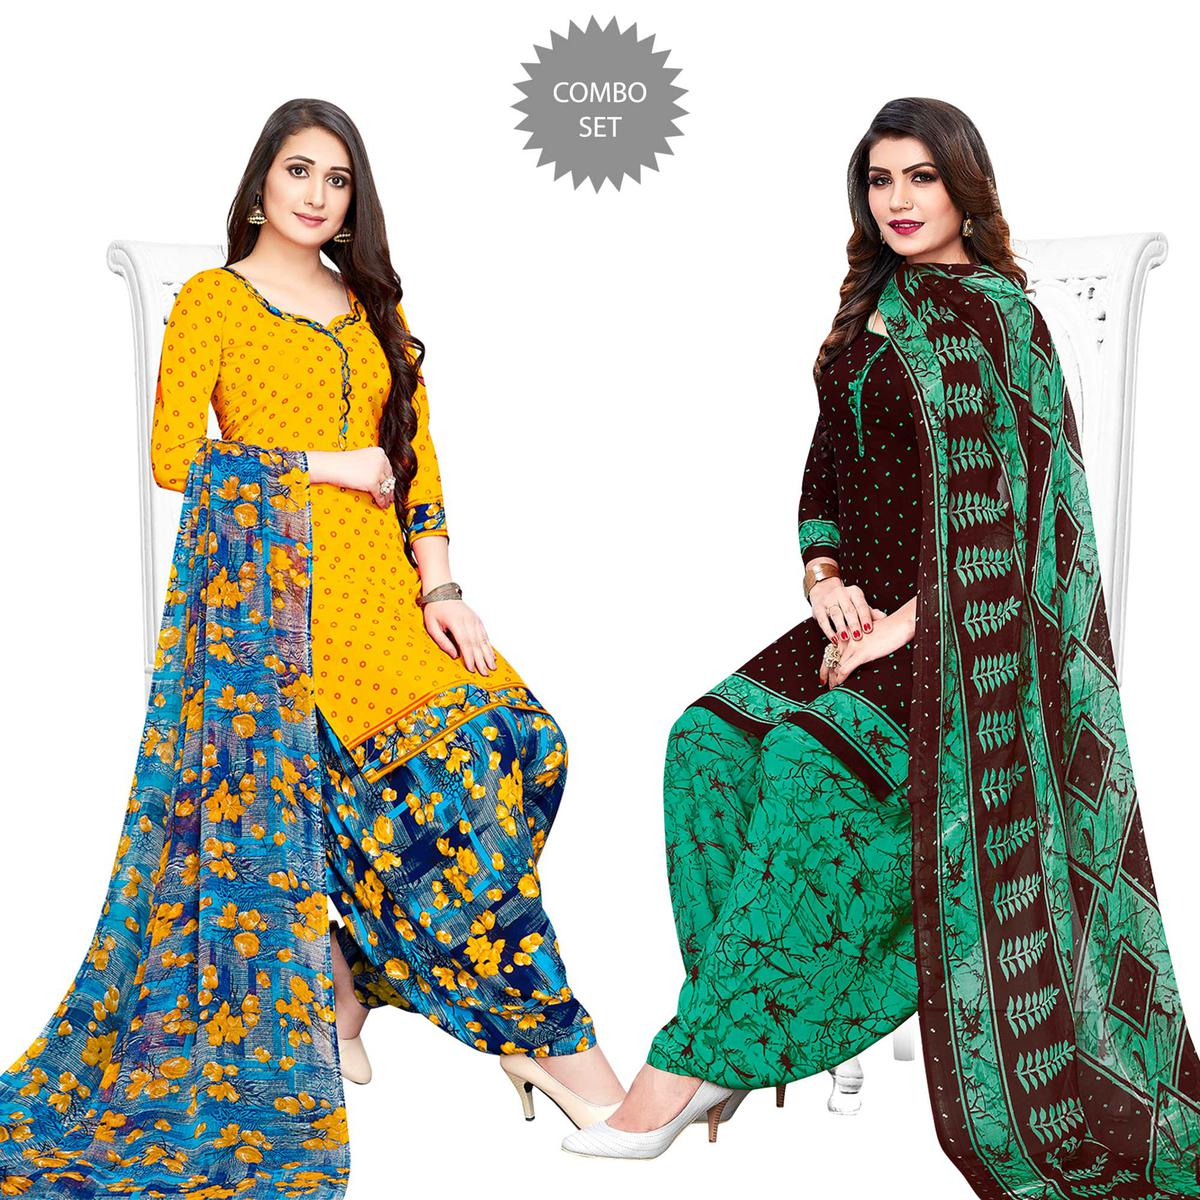 Radiant Yellow-Dark Brown Colored Casual Printed Crepe Patiala Suit - Pack of 2